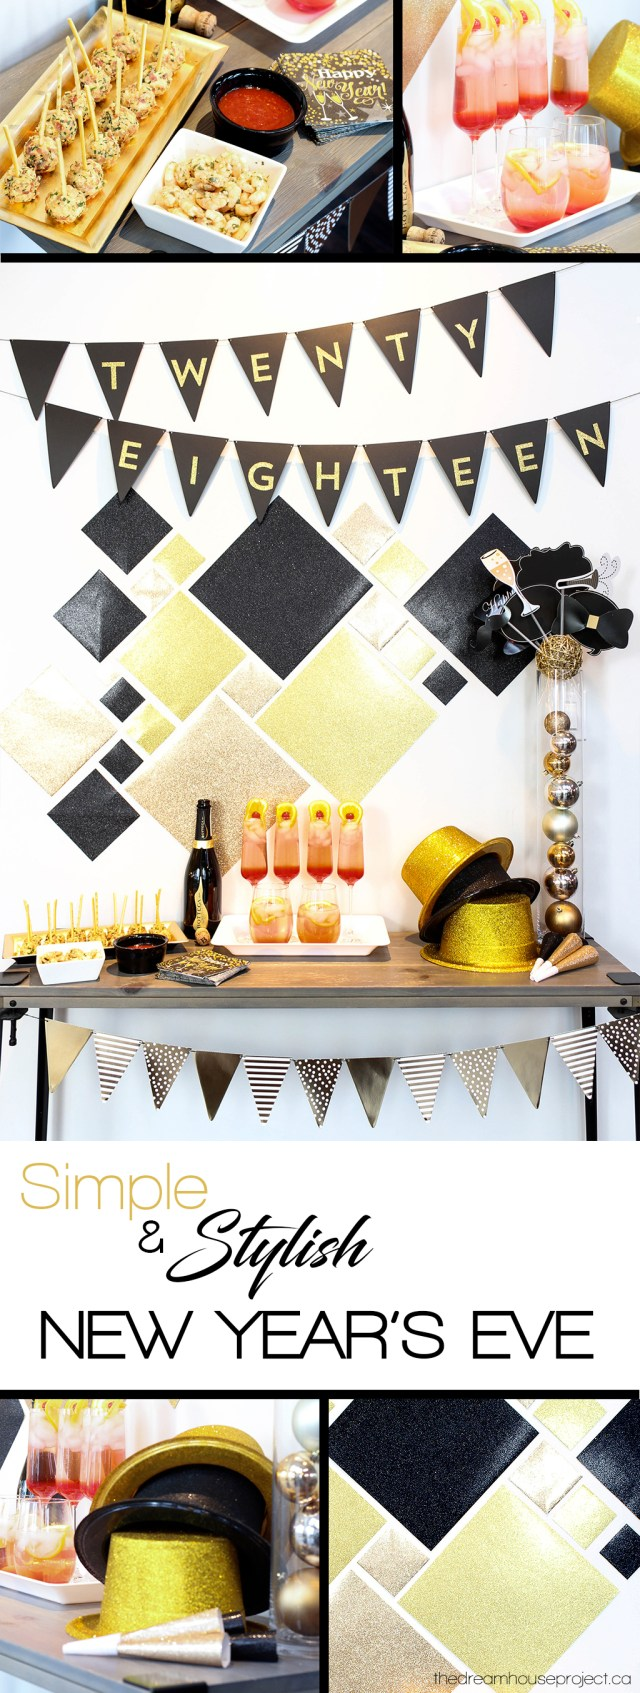 Simple Stylish New Year's Eve with black, gold & glitter decor | The Dreamhouse Project